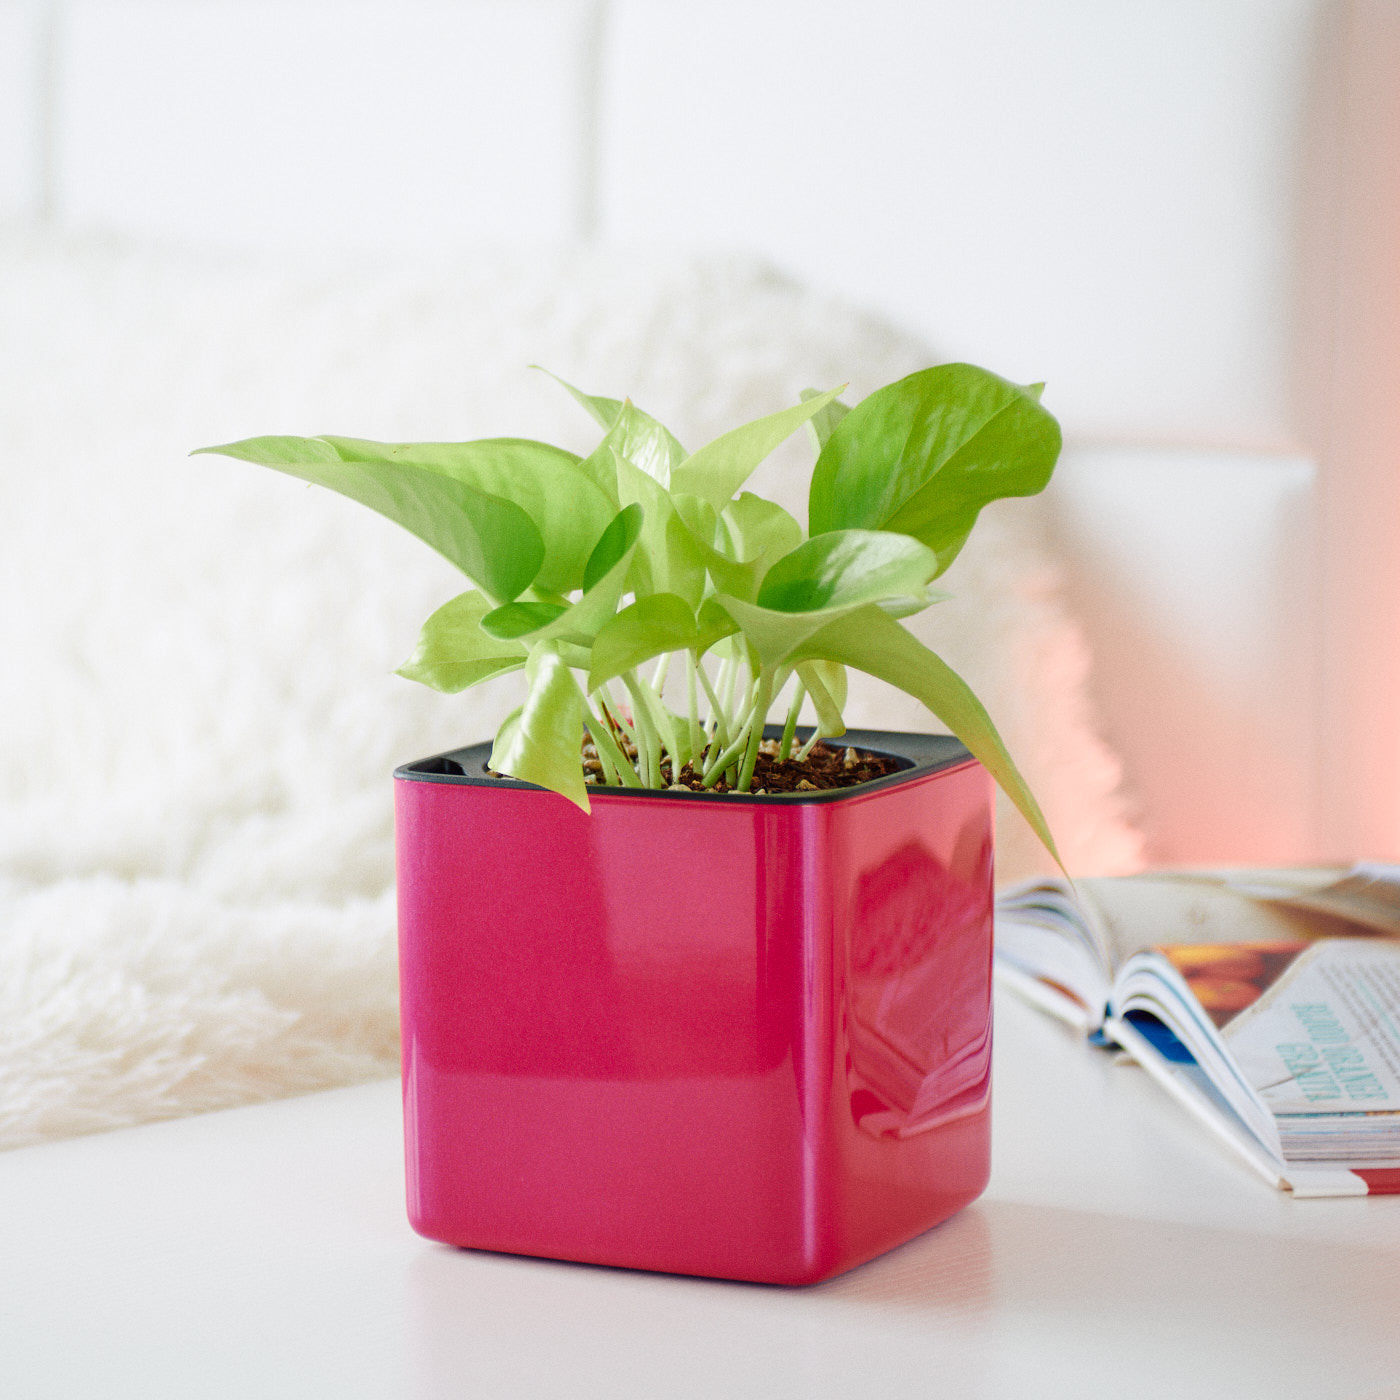 Pothos Neon In Lechuza Cube 14 Cherry Pie Planter | My City Plants